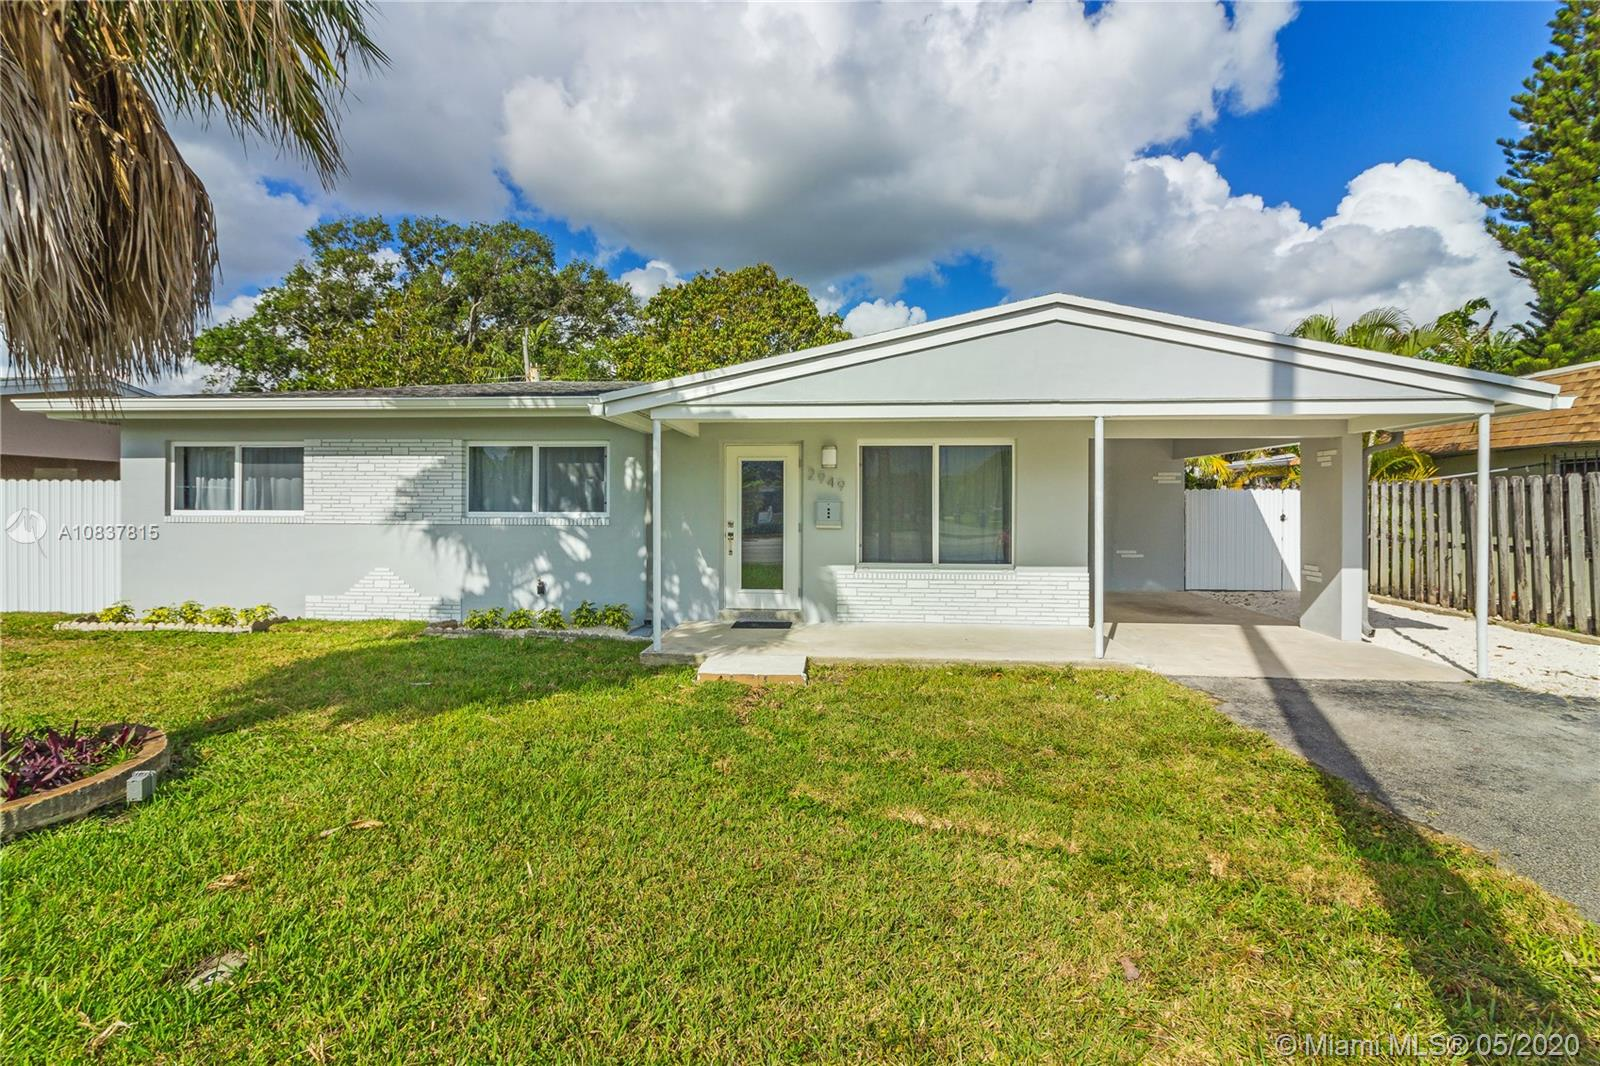 Move-in-Ready!! This lovely home is fully remodeled with great, modern finishes. No details have been spared. Home features 3 bedrooms 2 baths 1315 sf (indoor laundry room added). The kitchen is open with Quartz countertops and stainless steel appliances.  All window are impact, new AC, new tankless water heater, new washer and dryer. Interior and exterior has been newly painted. Original terrazzo floor restored and kept for its beauty and character. NO HOA!! Big backyard with room for pool.  Approval letter required with all offers or proof of funds.